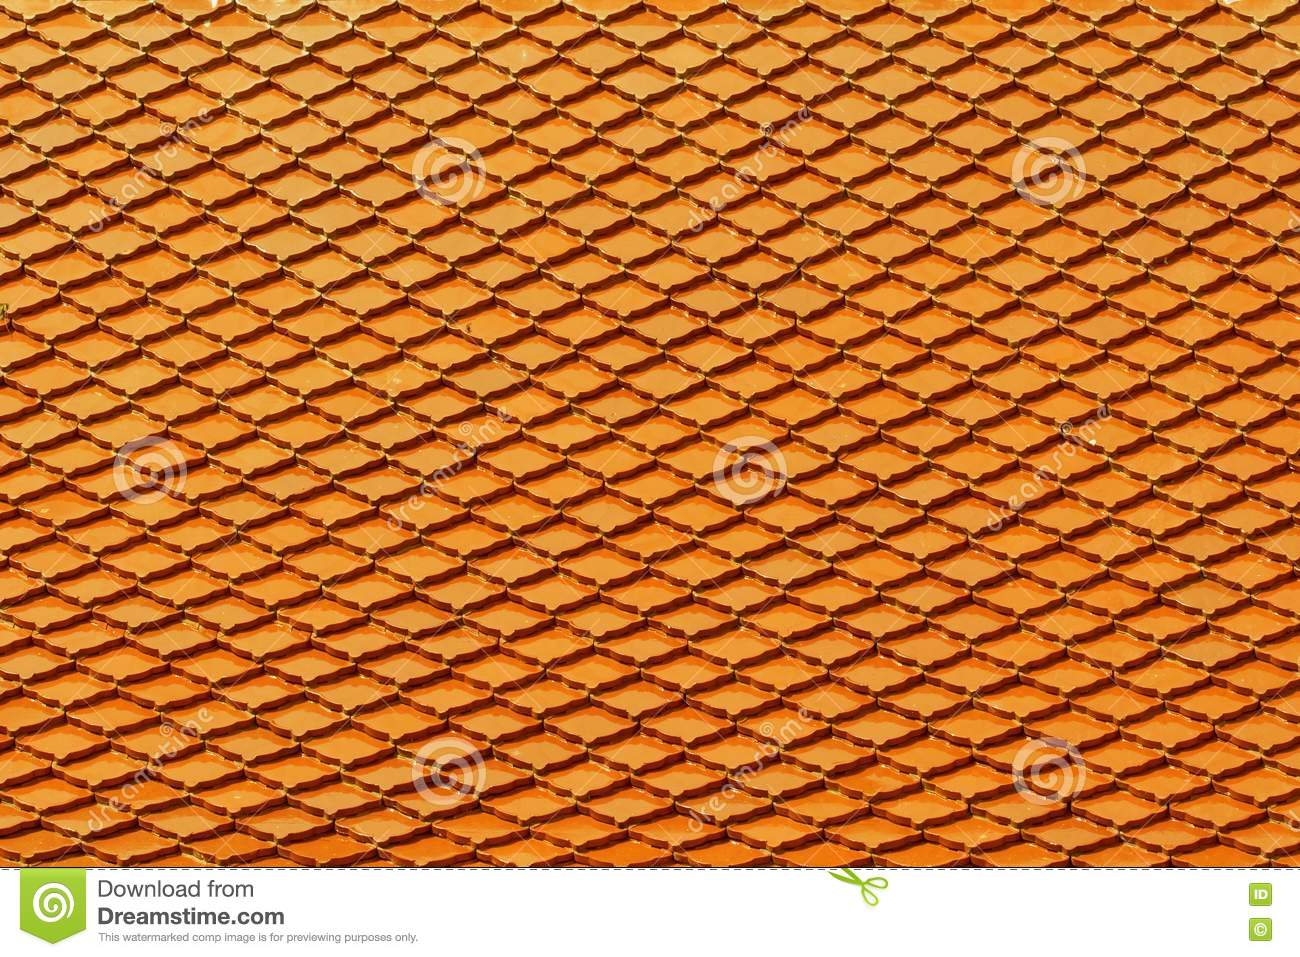 Roof tile pattern stock photos image 23587753 for Roof tile patterns